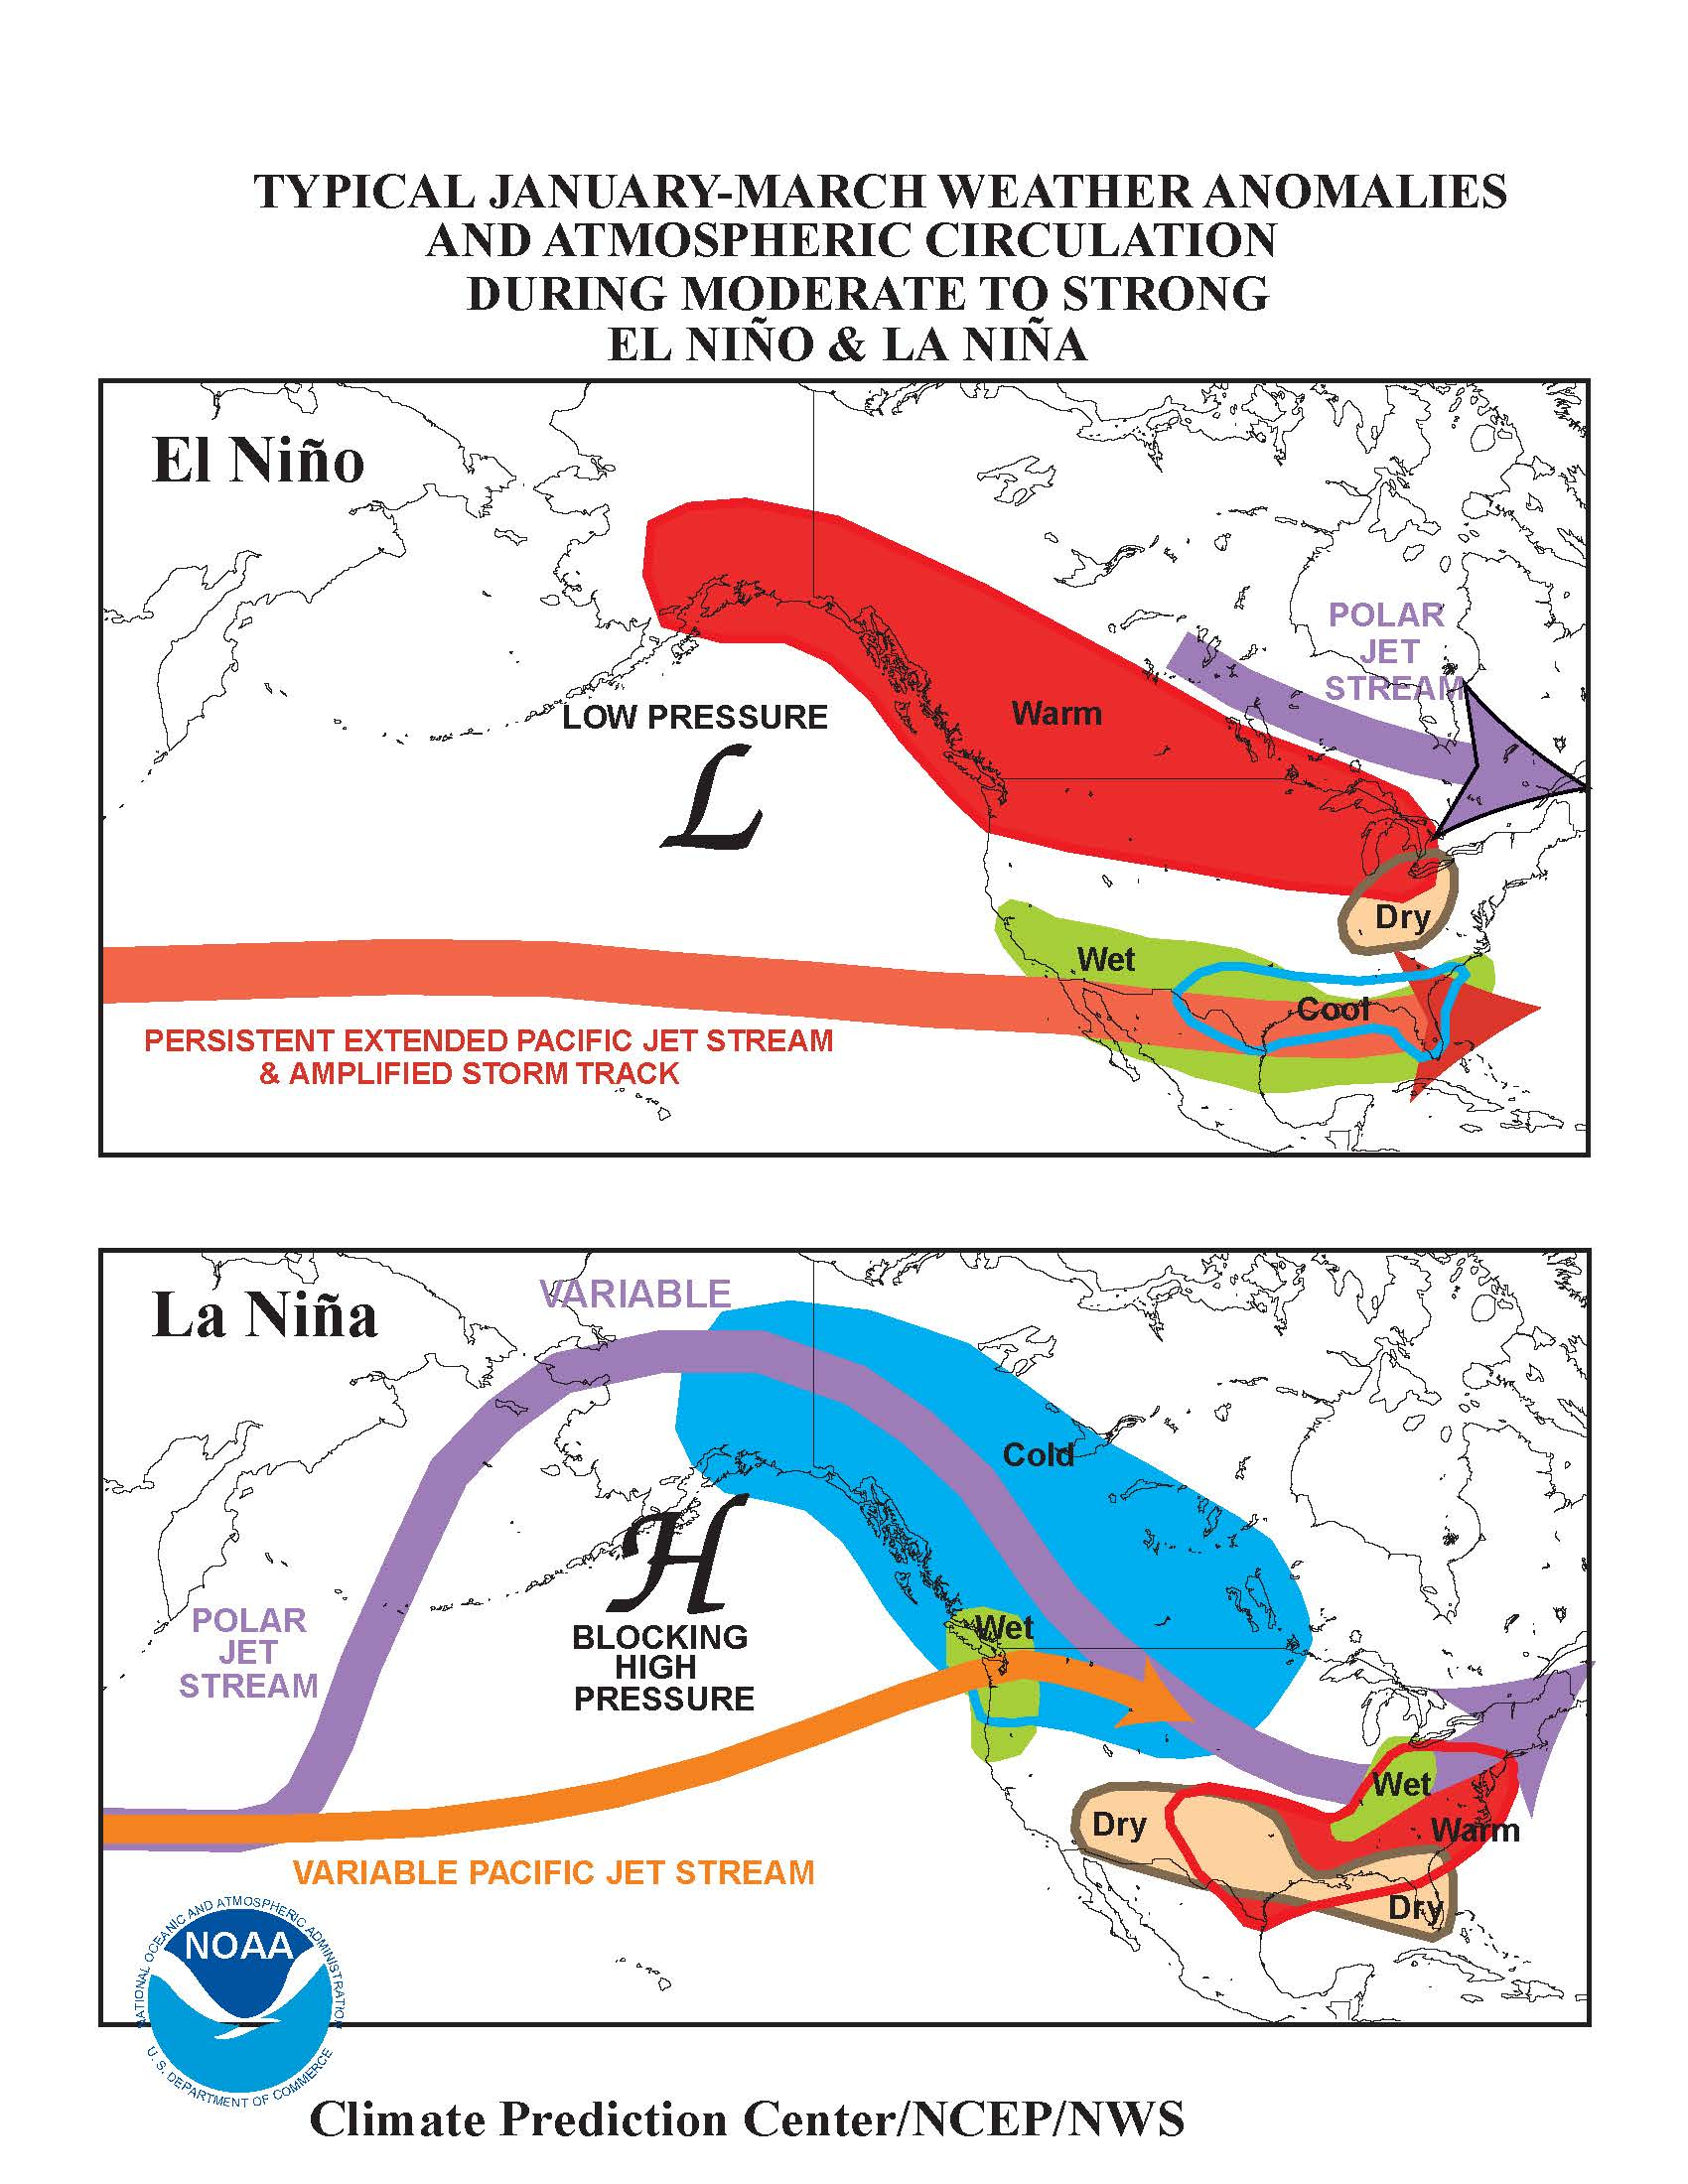 typical january to March weather anomalies & atmospheric circulation during moderate to strong El Nino and La nina